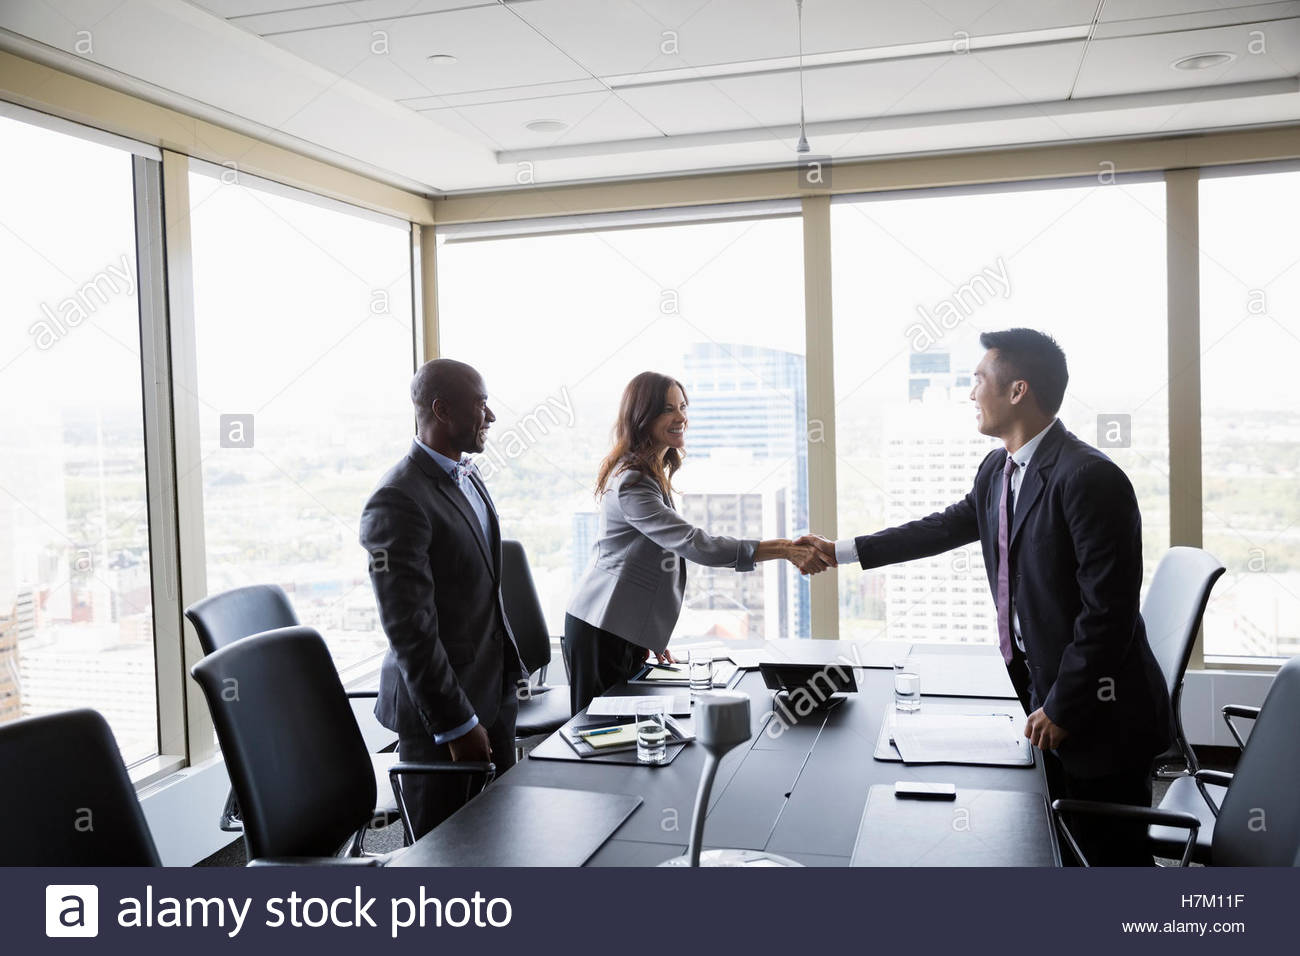 Business people handshaking in urban conference room meeting Stock Photo